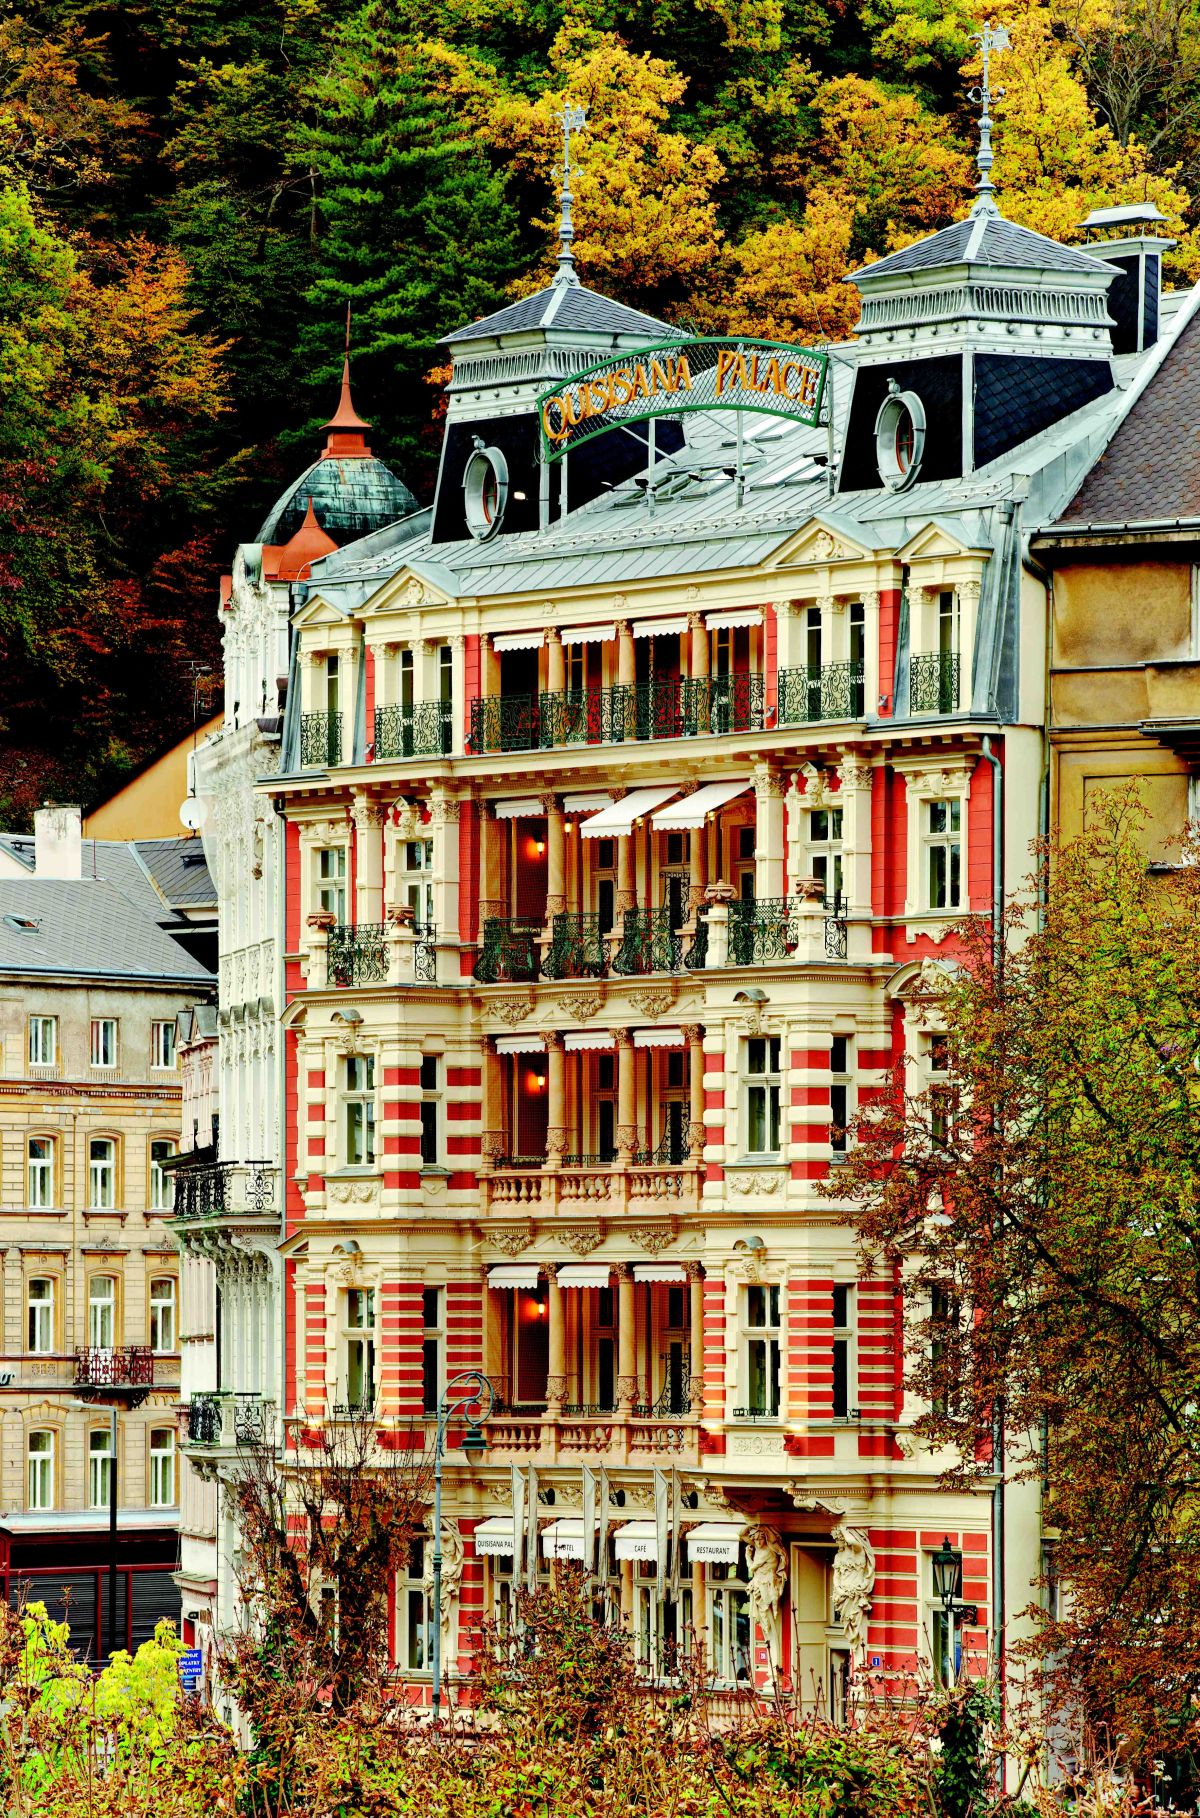 Quisisana Palace, Karlovy Vary, Czech Republic, European Union, facade, Fassade, Herbst 2012, Autumn, Fall, autumnal